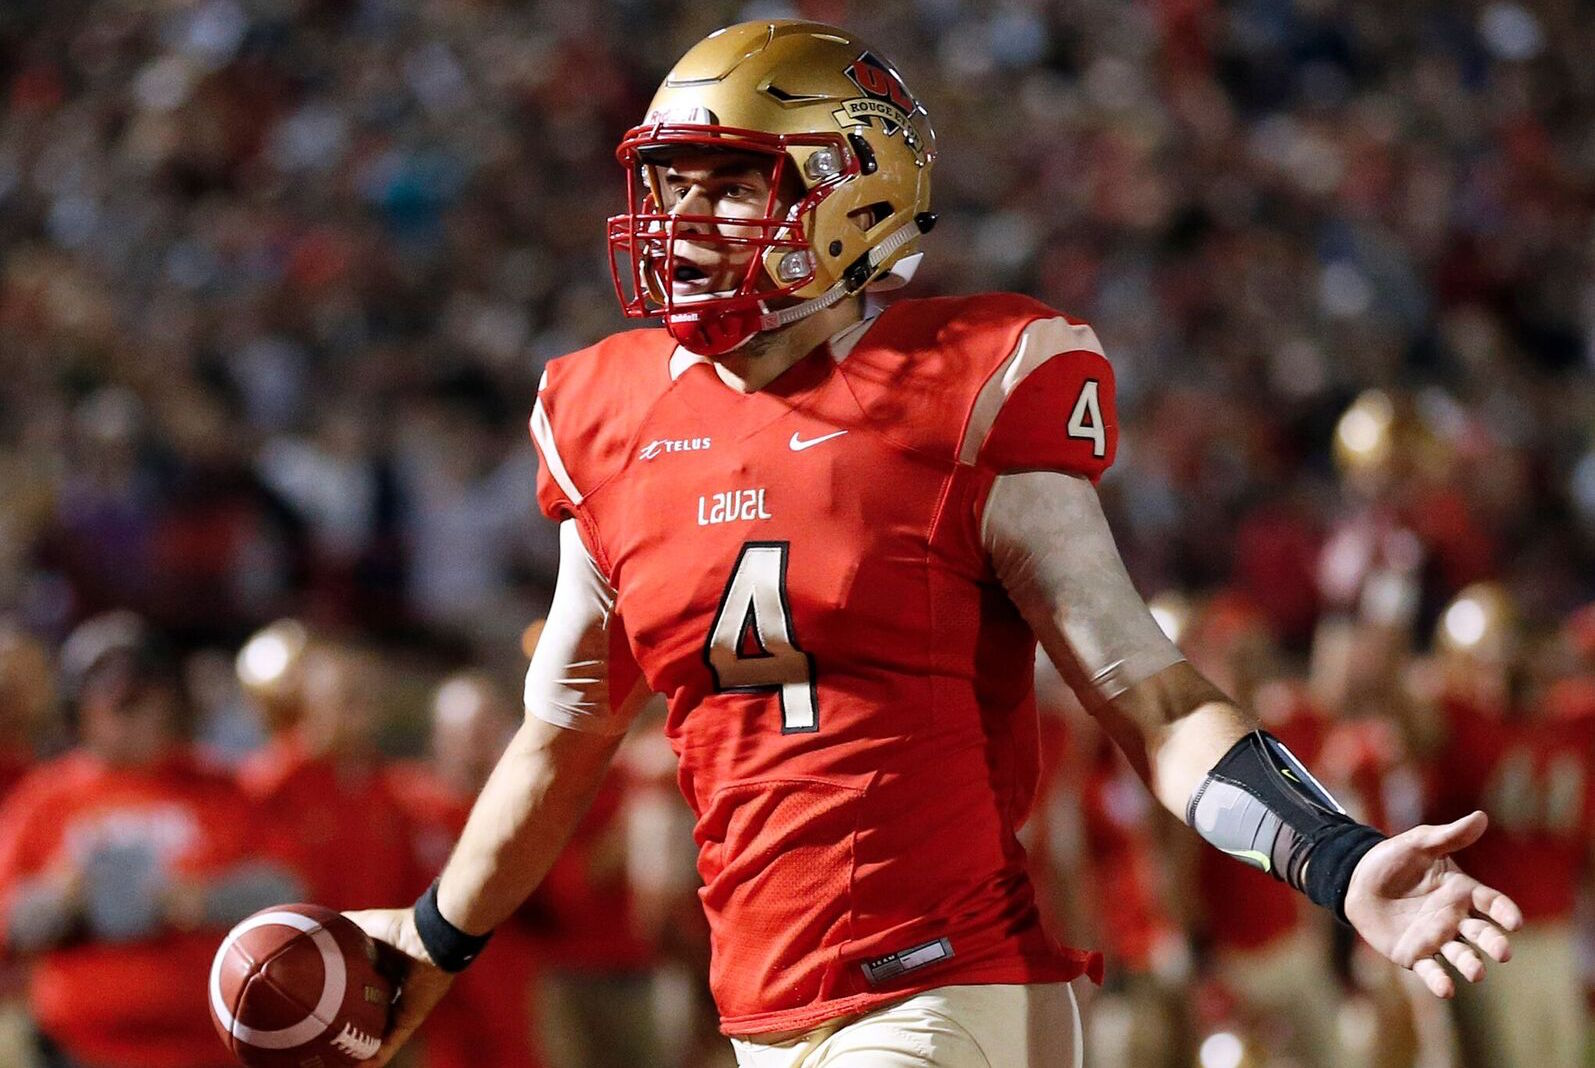 Football Top 10 (#2): Reigning Vanier Cup champs remain unanimous No. 1 pick